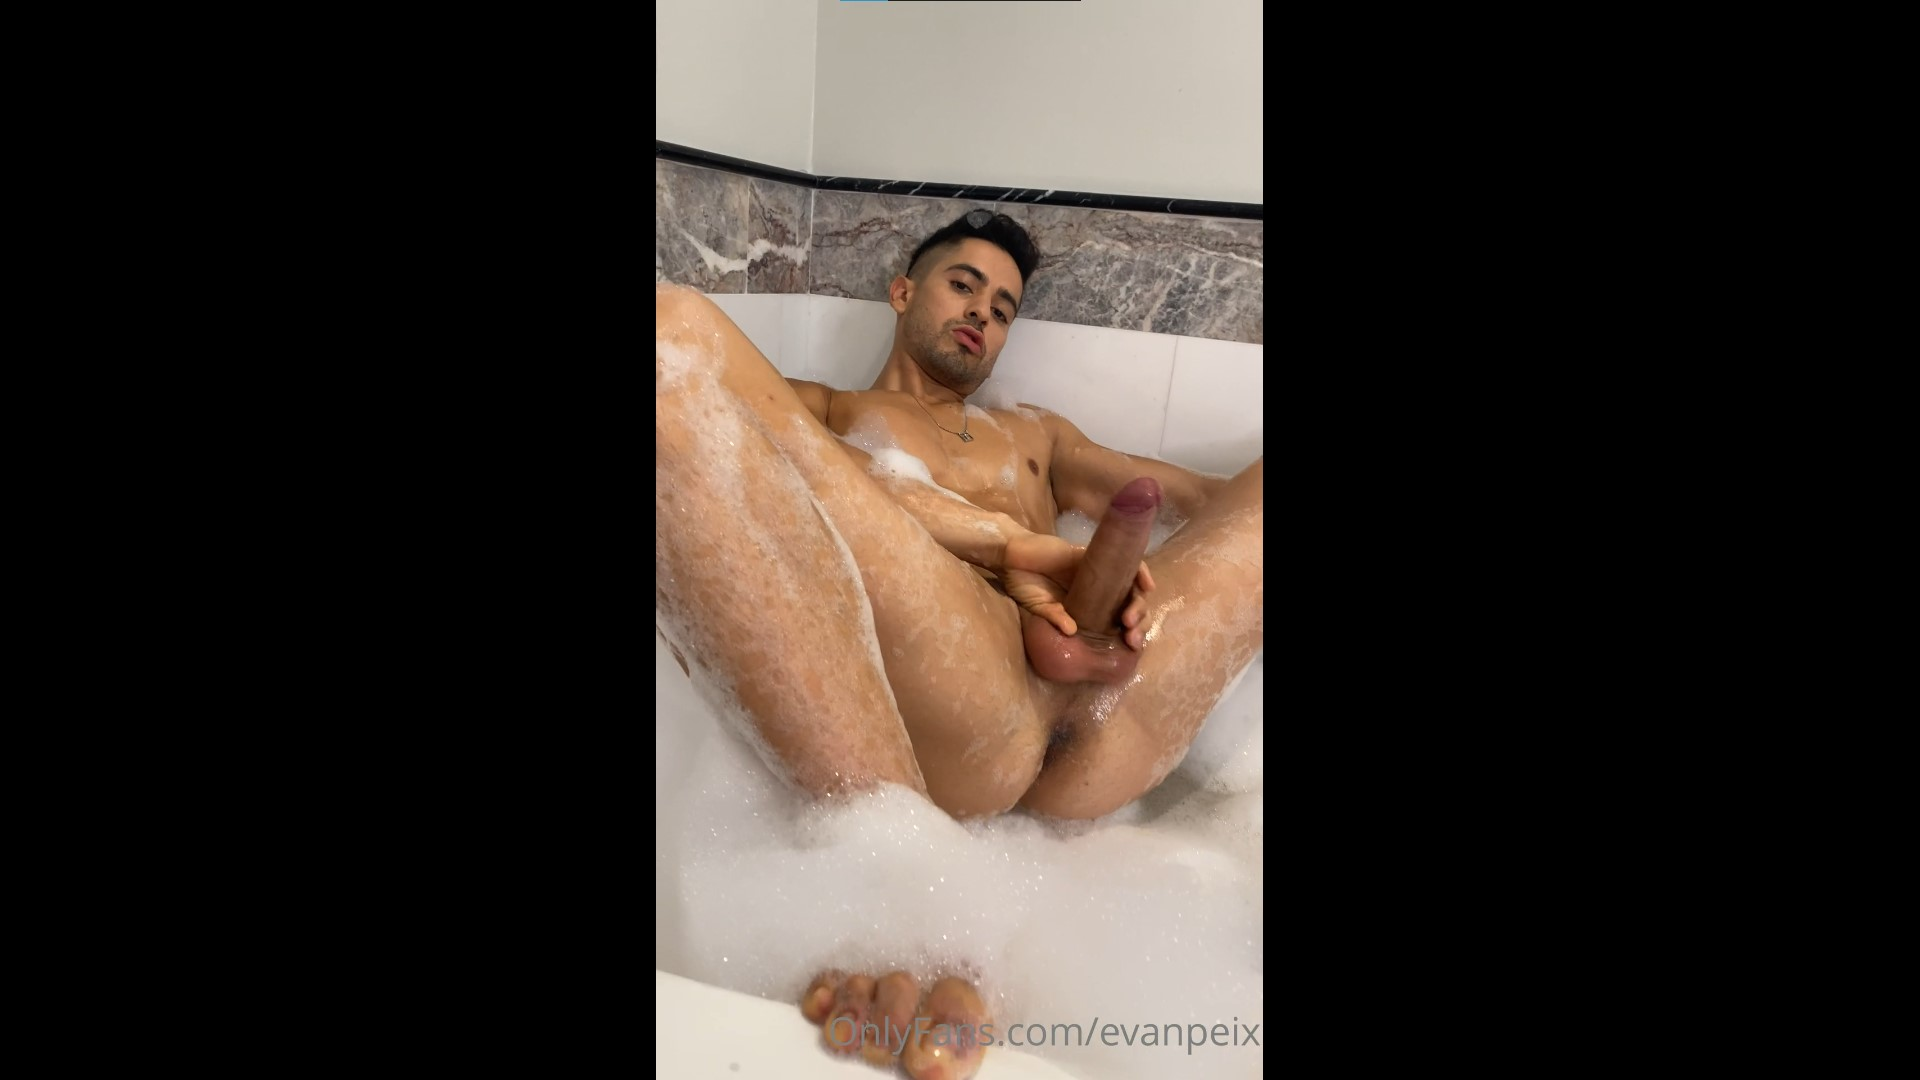 Evan Peix fooling around in the bath